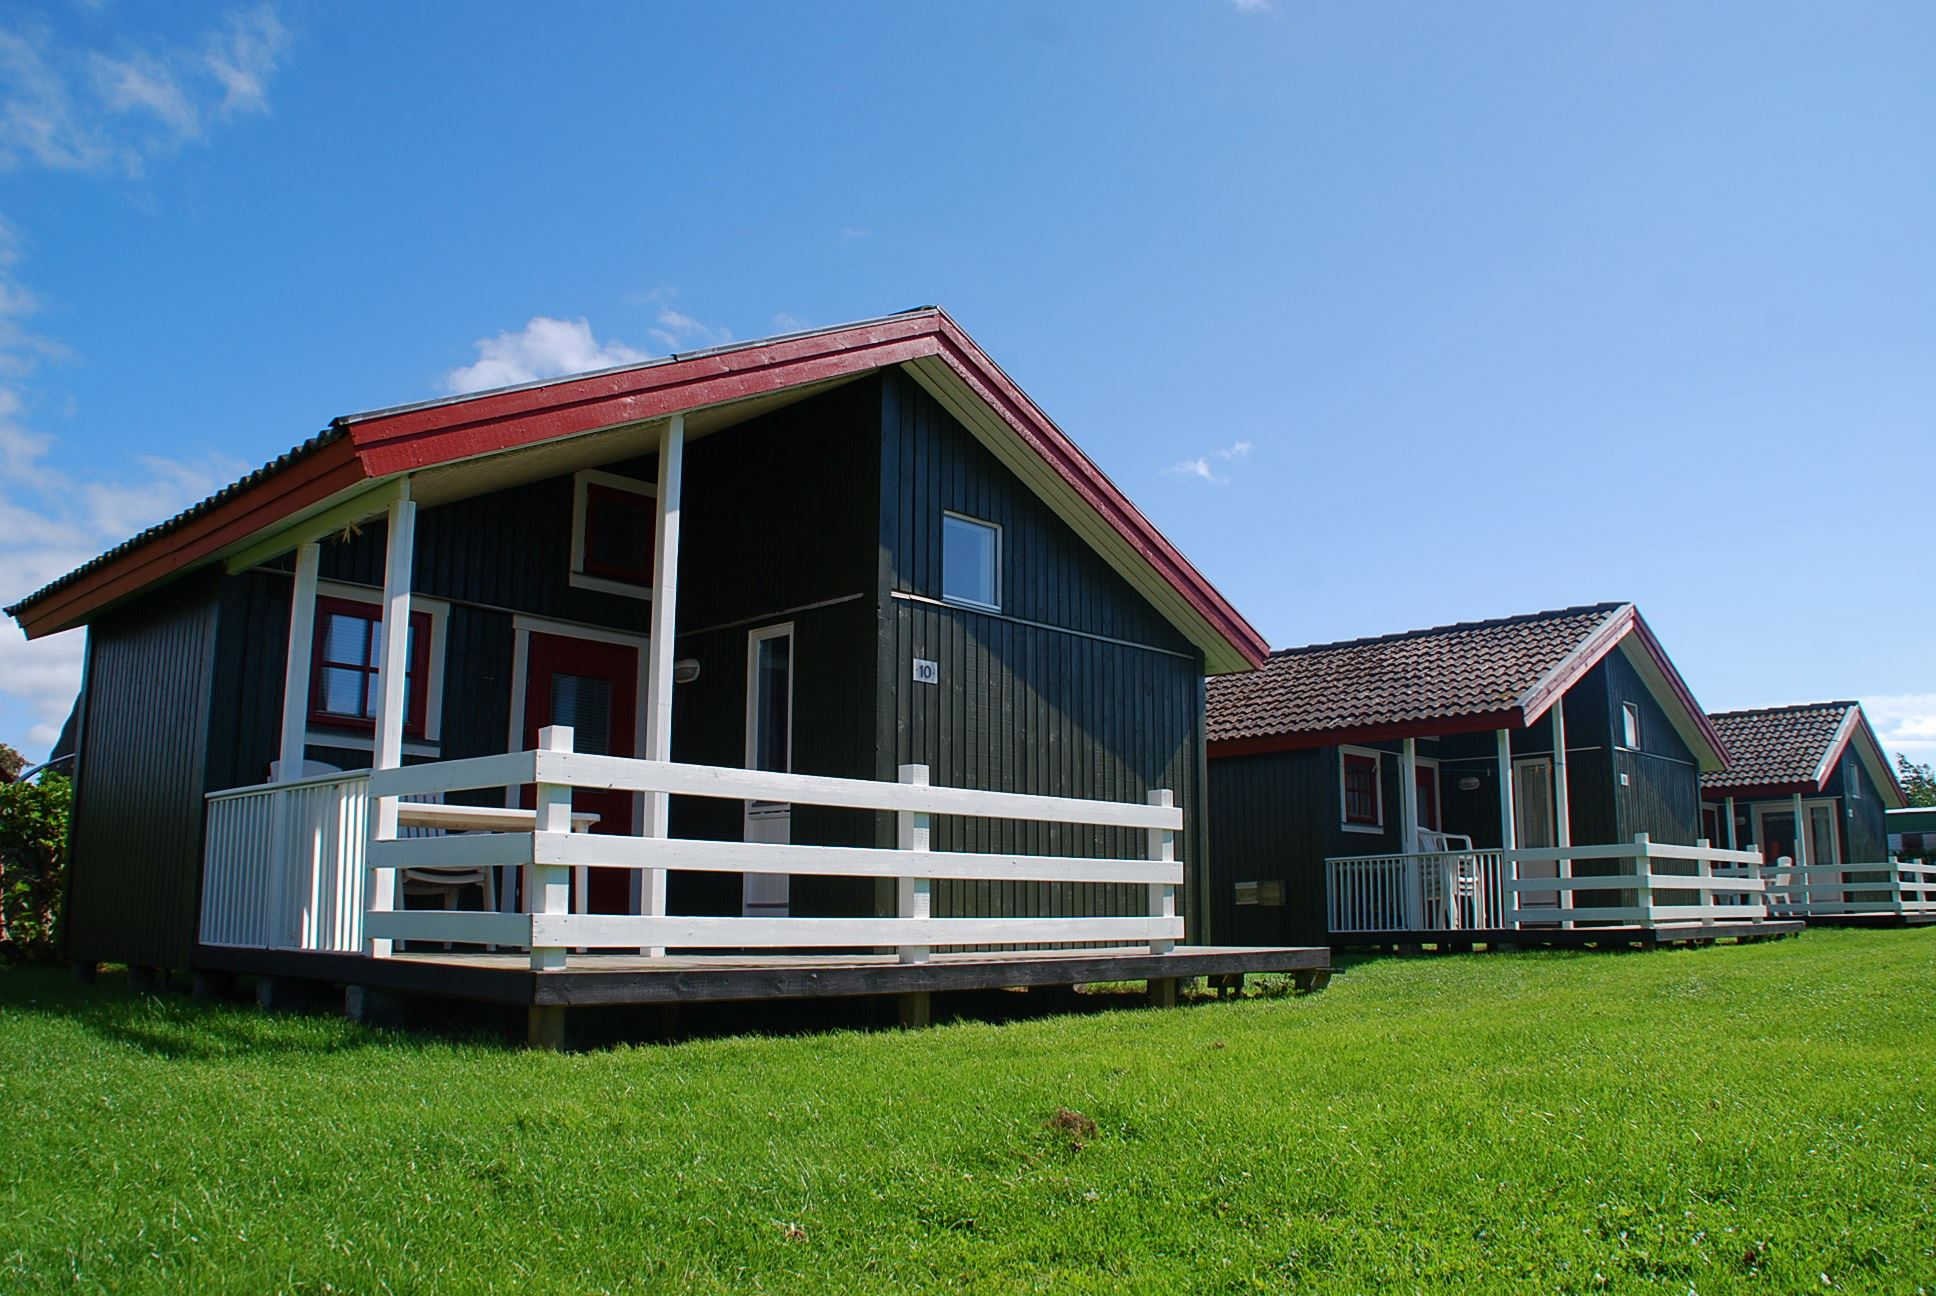 Rødgaard Camping Cottages